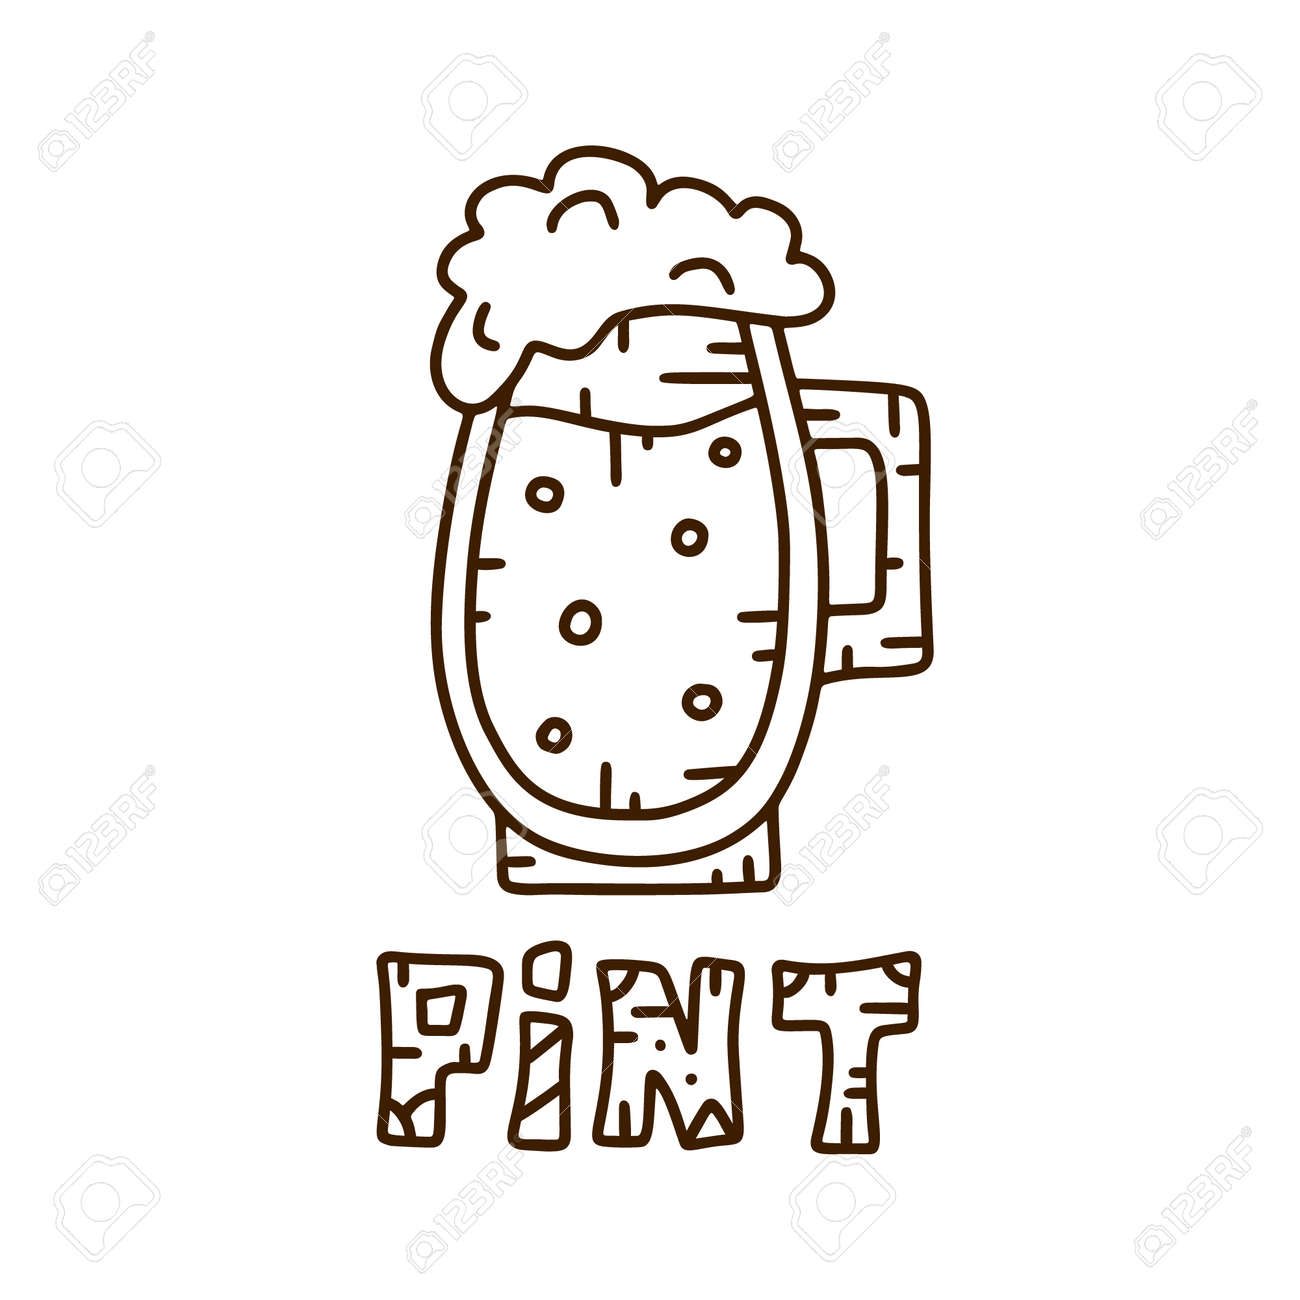 Contour Vector Logo Beer Mug With Hand Drawning Lettering Pint Royalty Free Cliparts Vectors And Stock Illustration Image 130423210